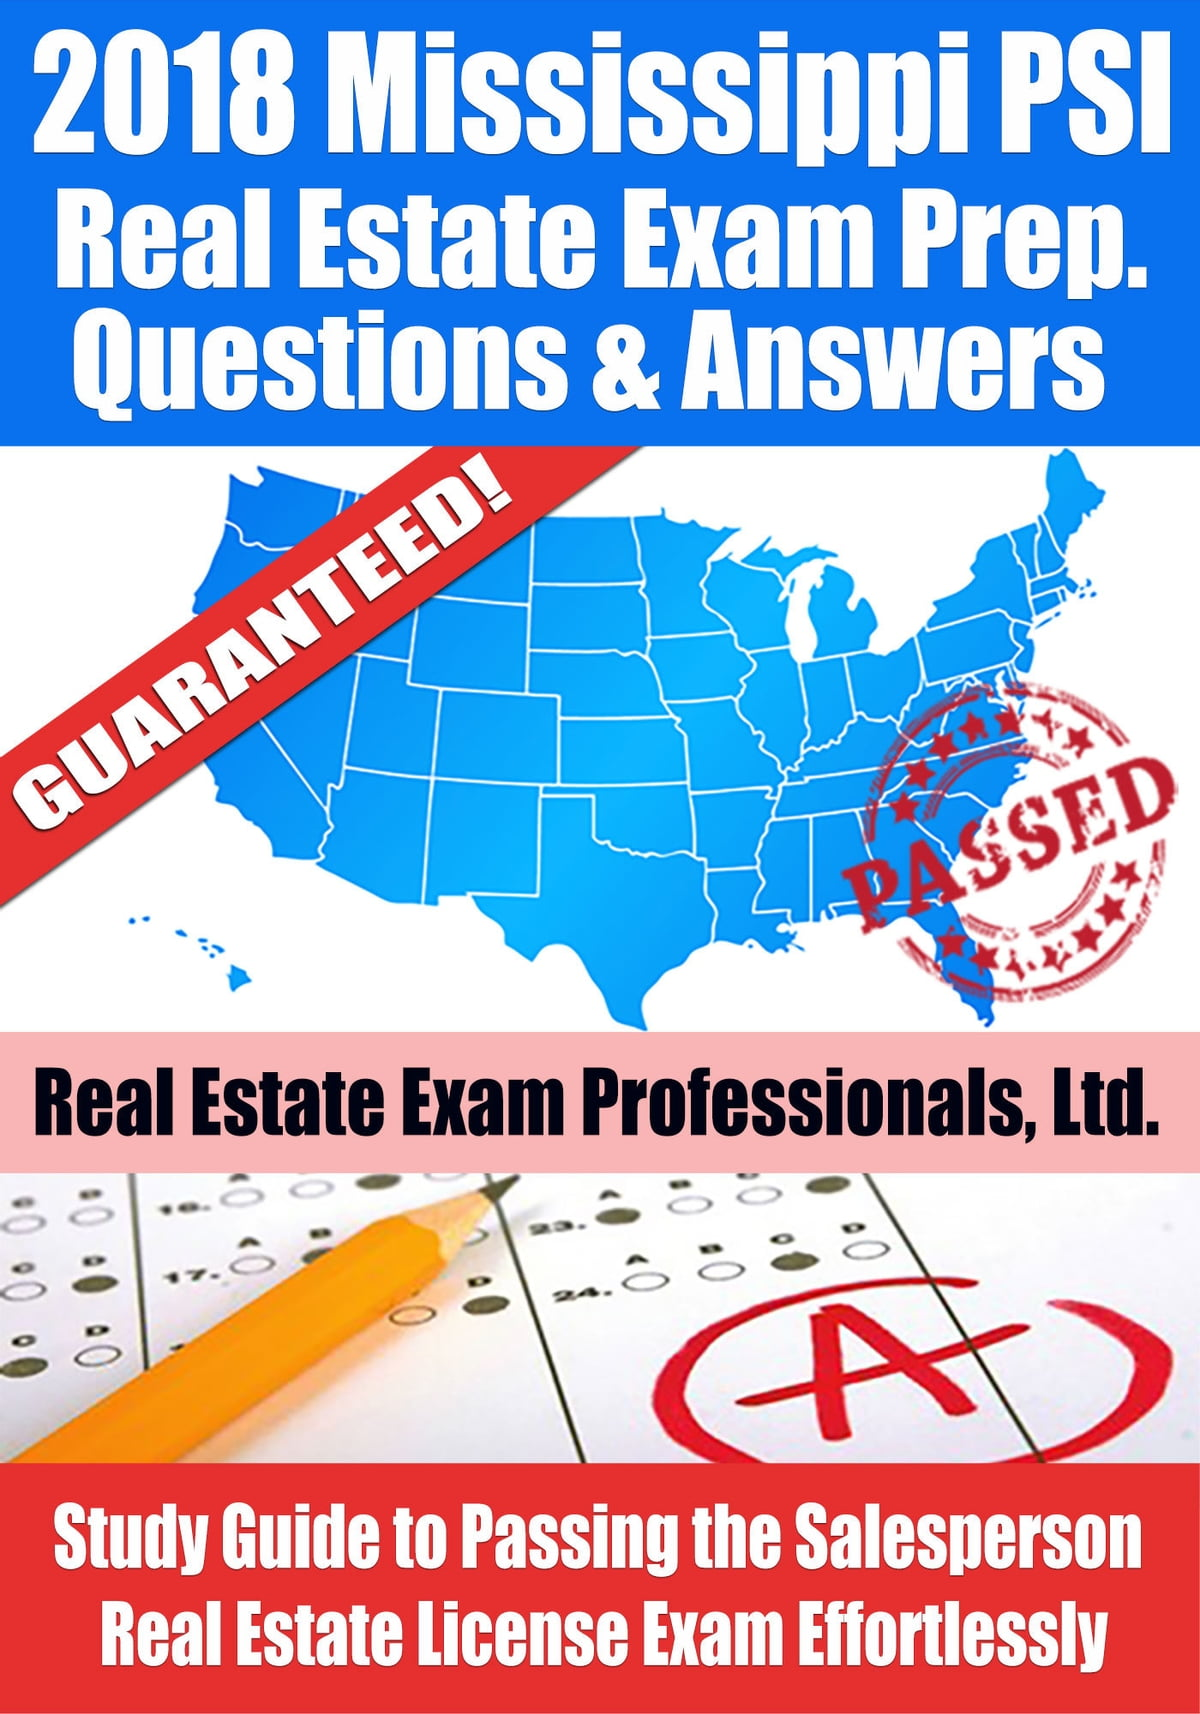 2018 Mississippi PSI Real Estate Exam Prep Questions and Answers: Study  Guide to Passing the Salesperson Real Estate License Exam Effortlessly  ebook